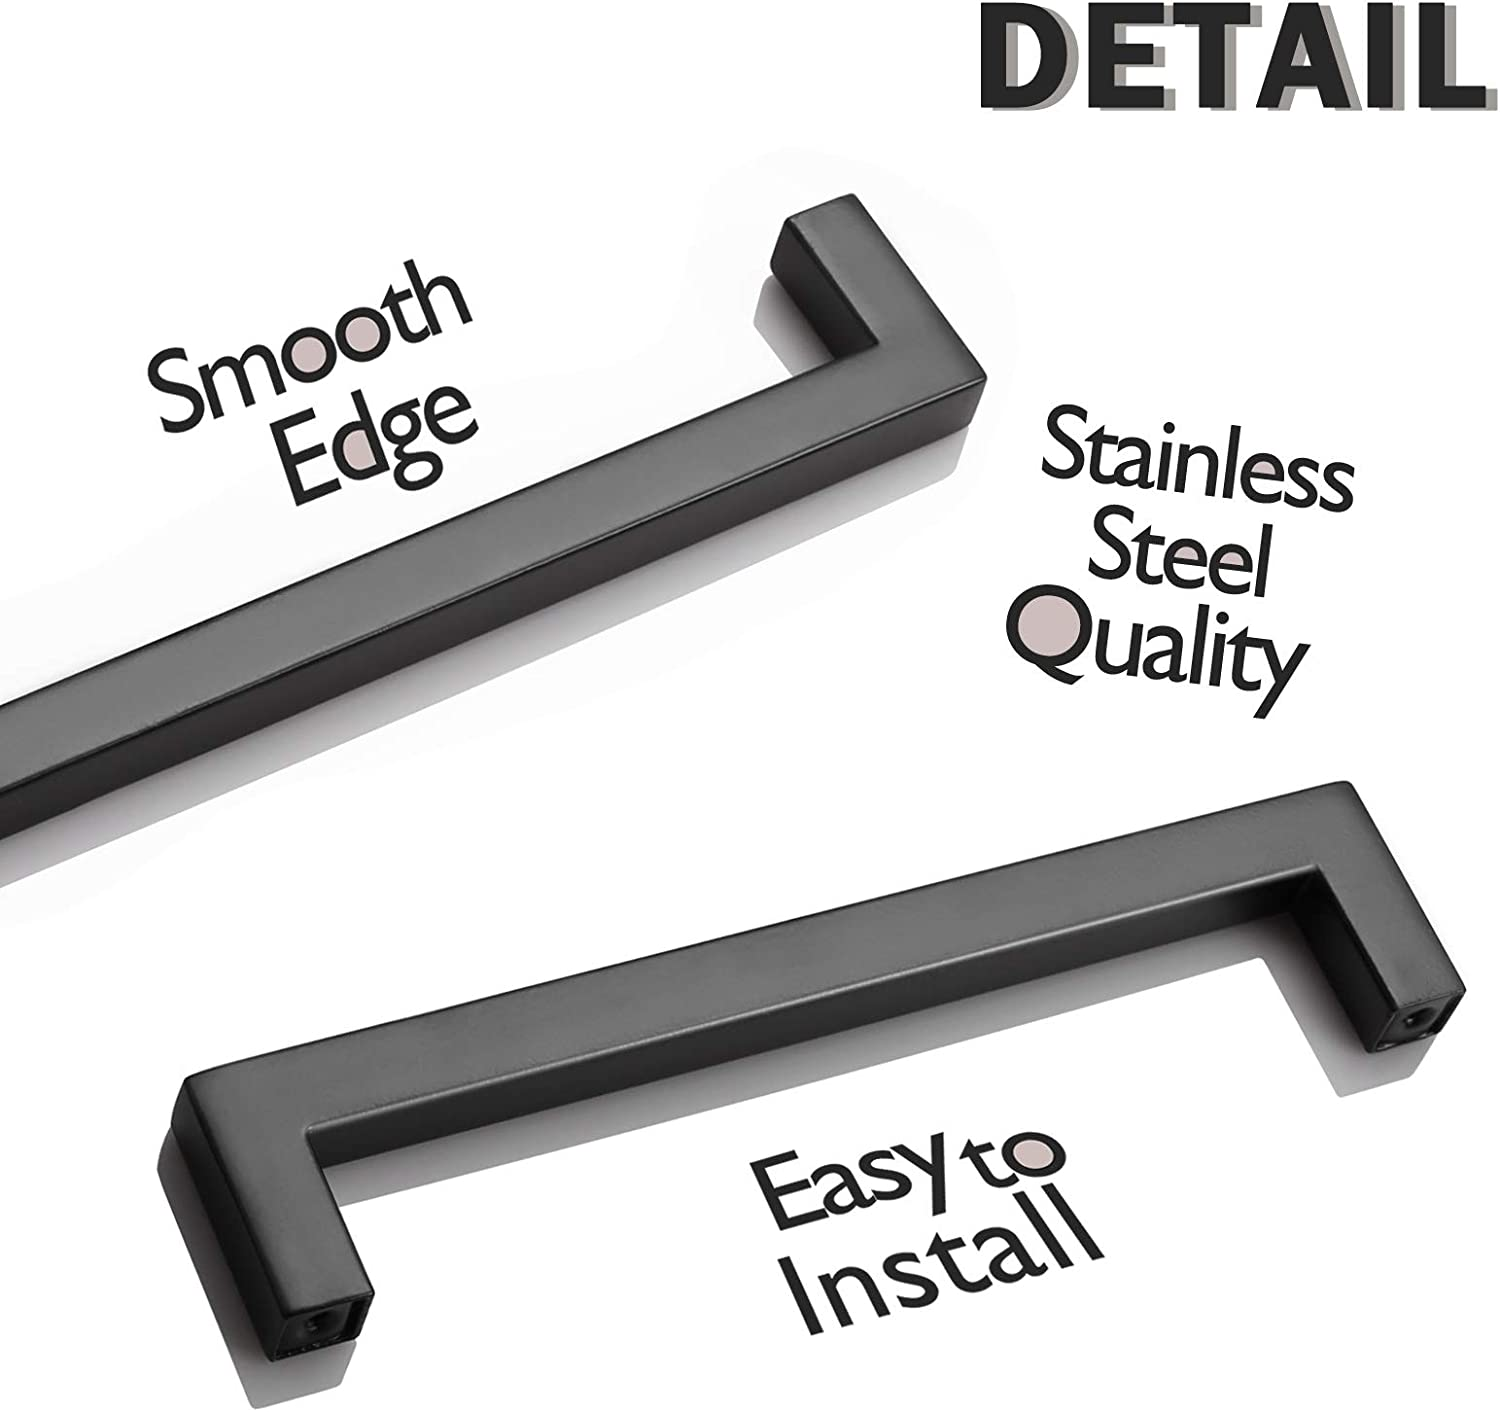 256mm Width 1//2 6 Pack Probrico Cabinet Handle Sets Flat Black Stainless Steel Square T Bar Kitchen Cupboard Cabinet Pulls Hole Centers 10